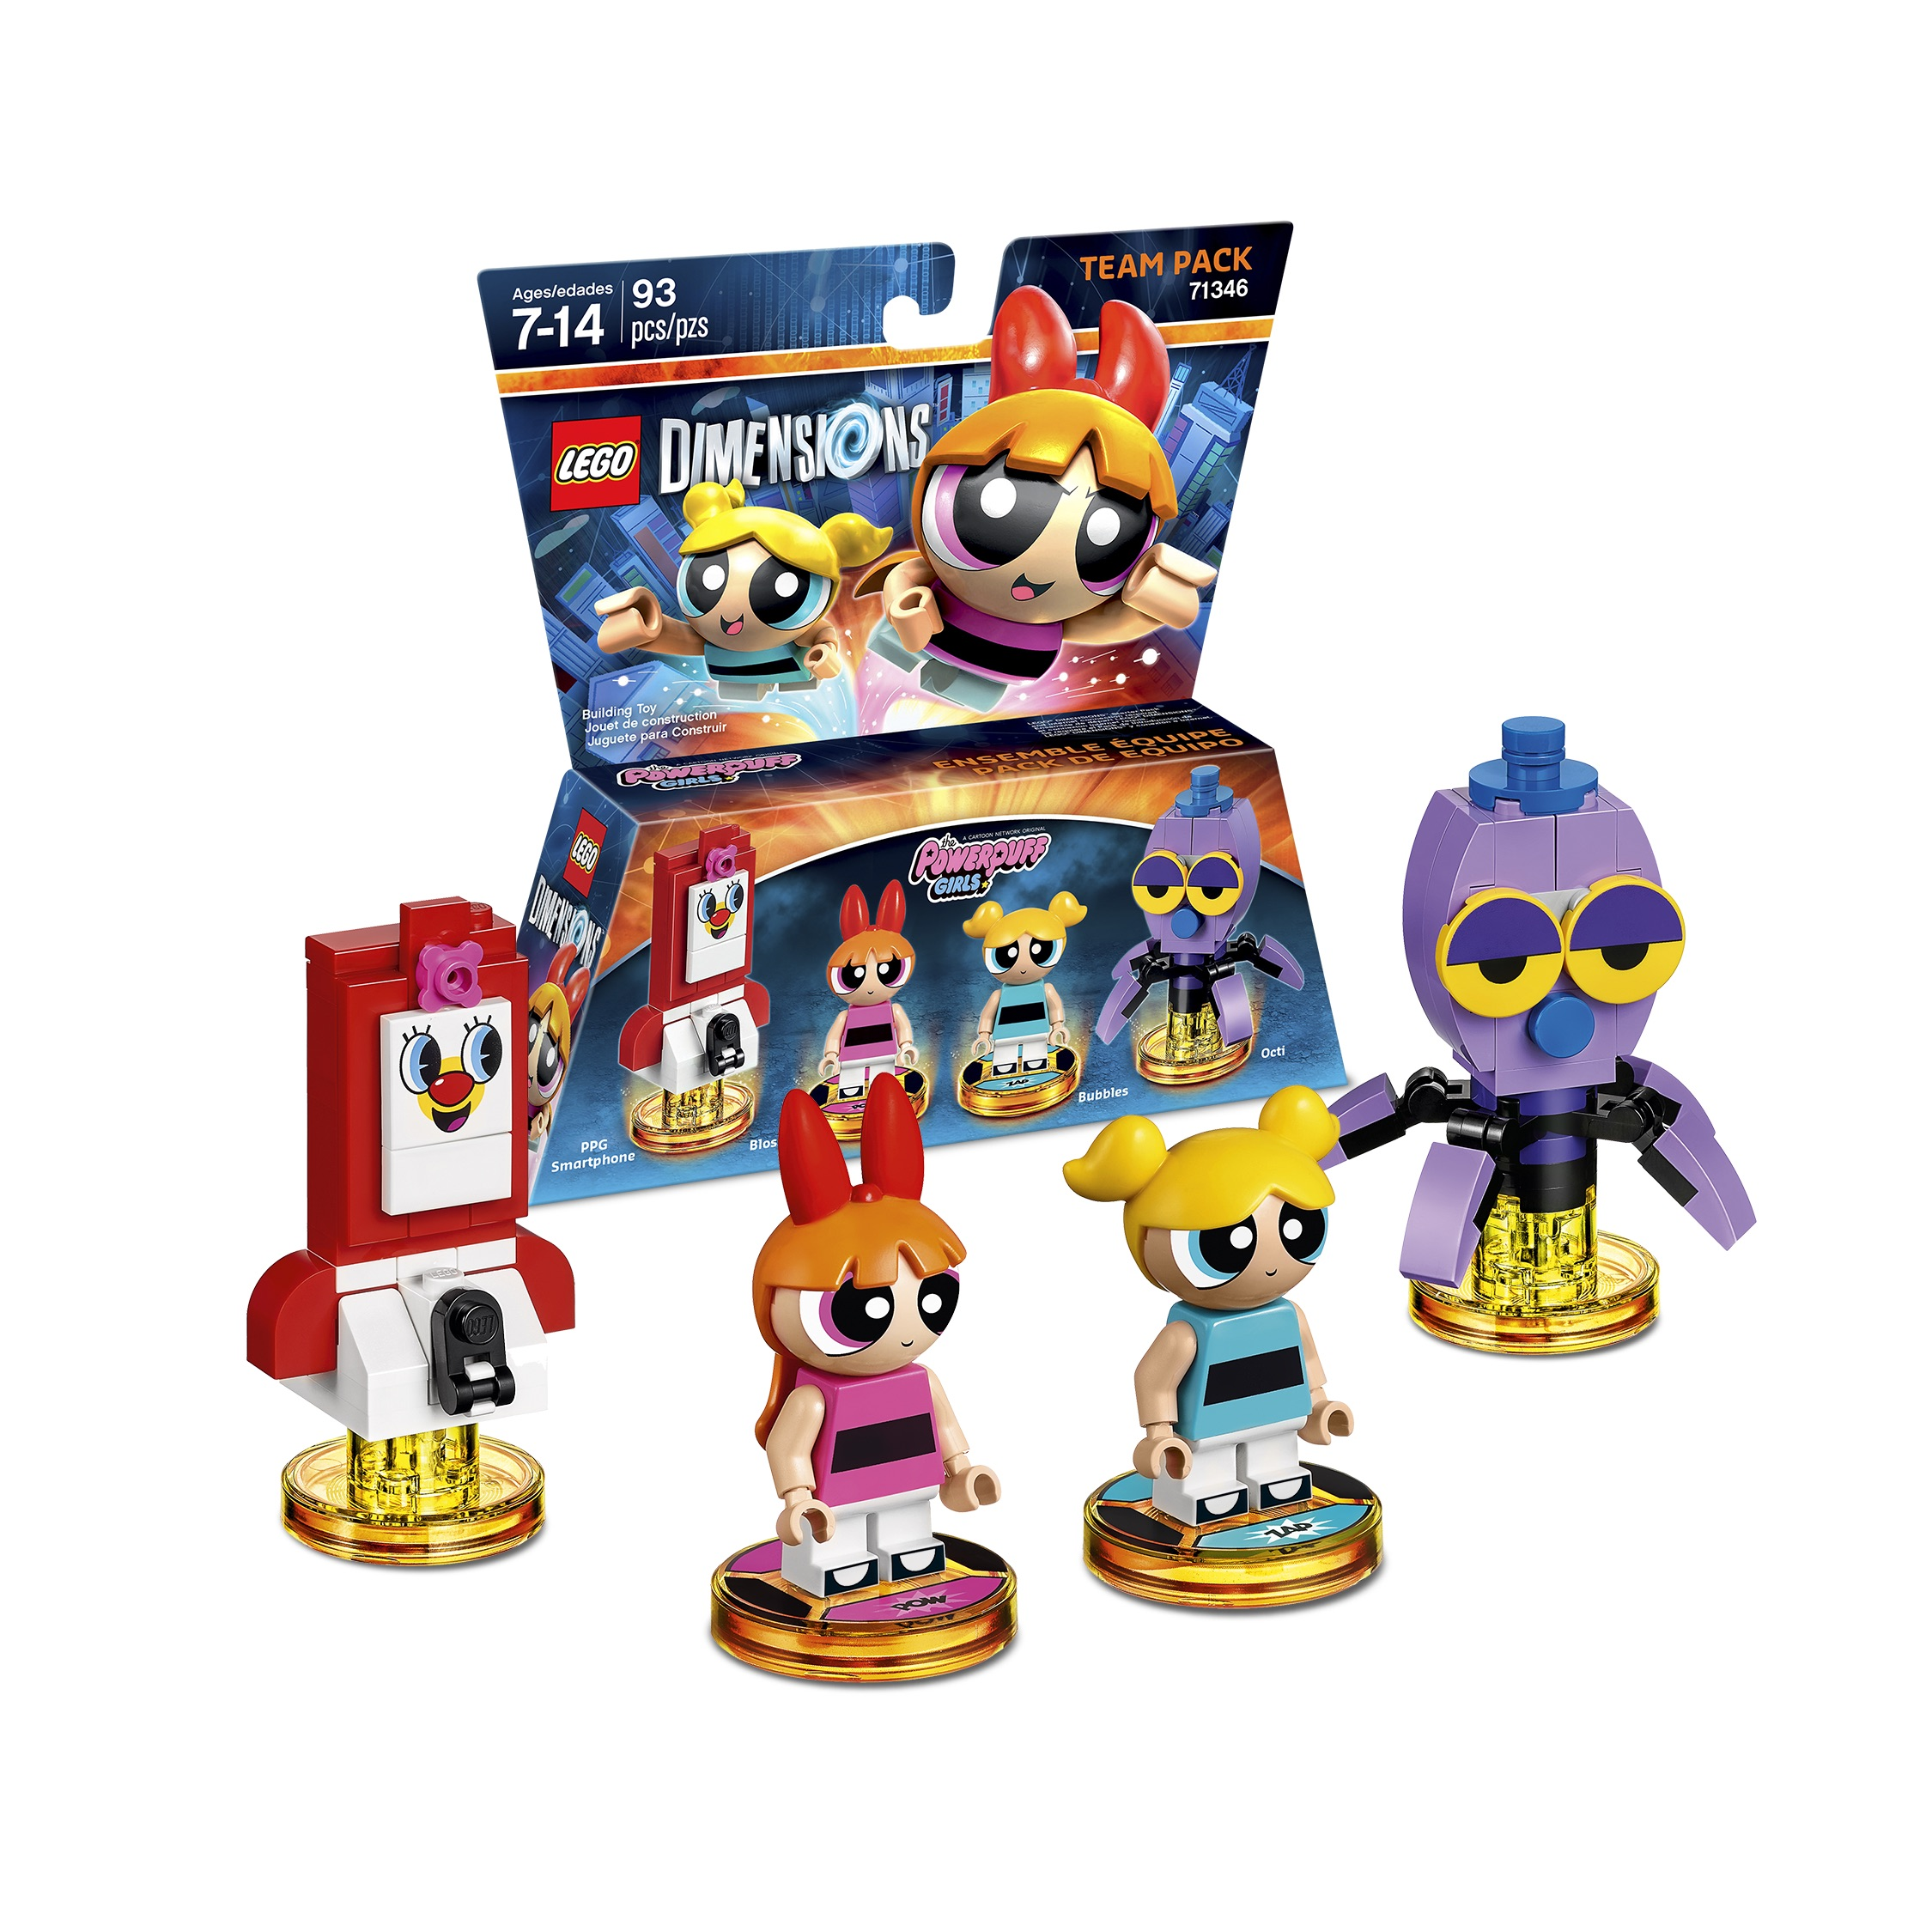 LEGO Dimensions - The Powerpuff Girls Team Pack